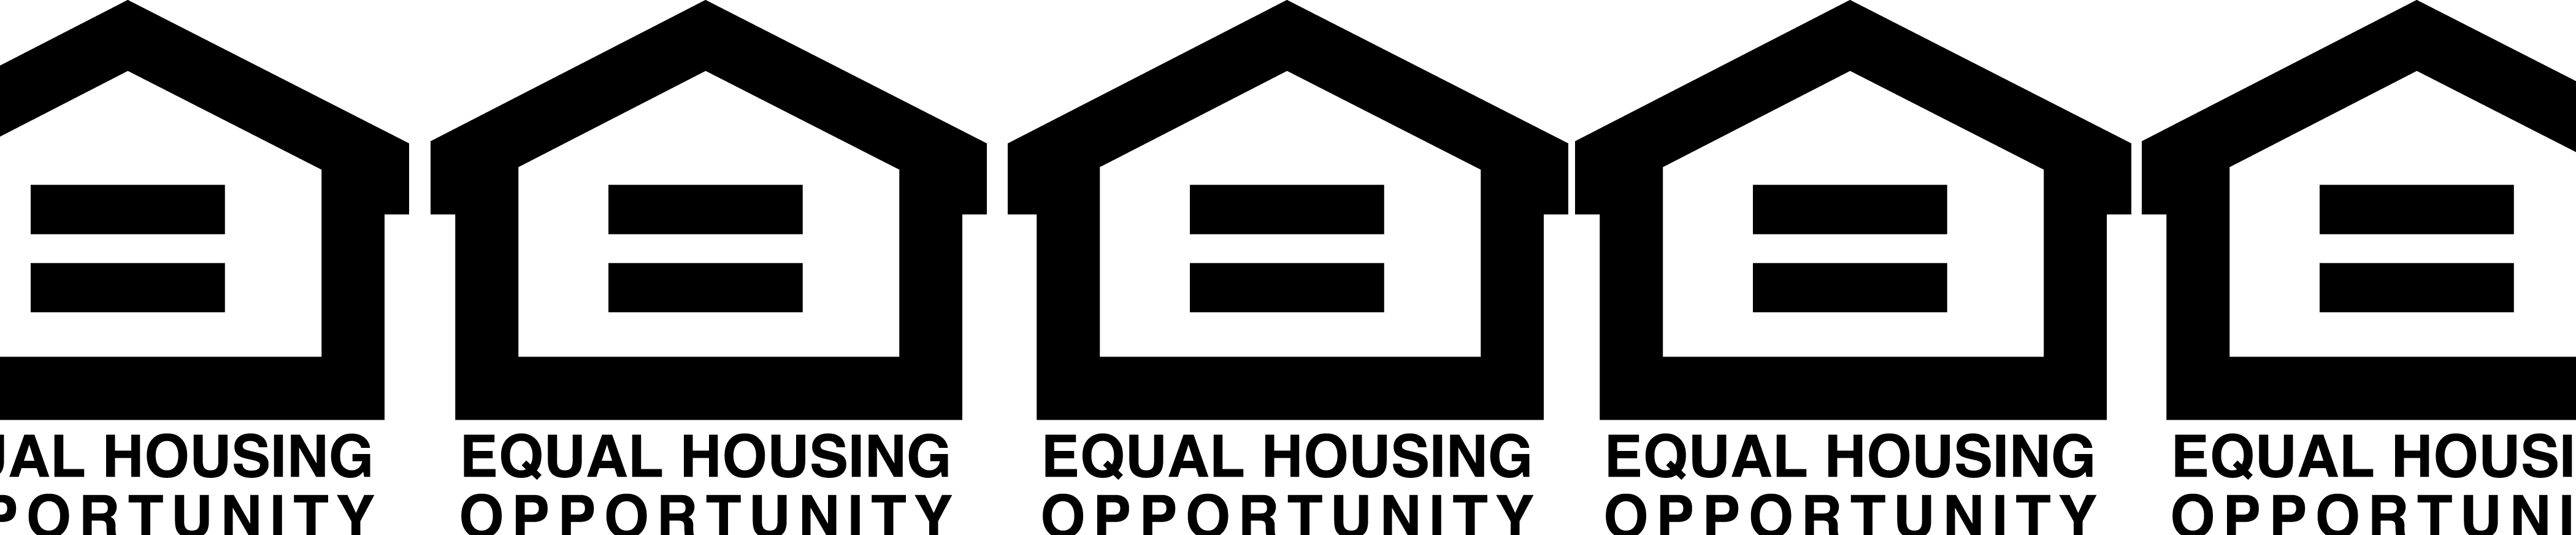 Fair housing rule needs to be used everywhere, not weakened